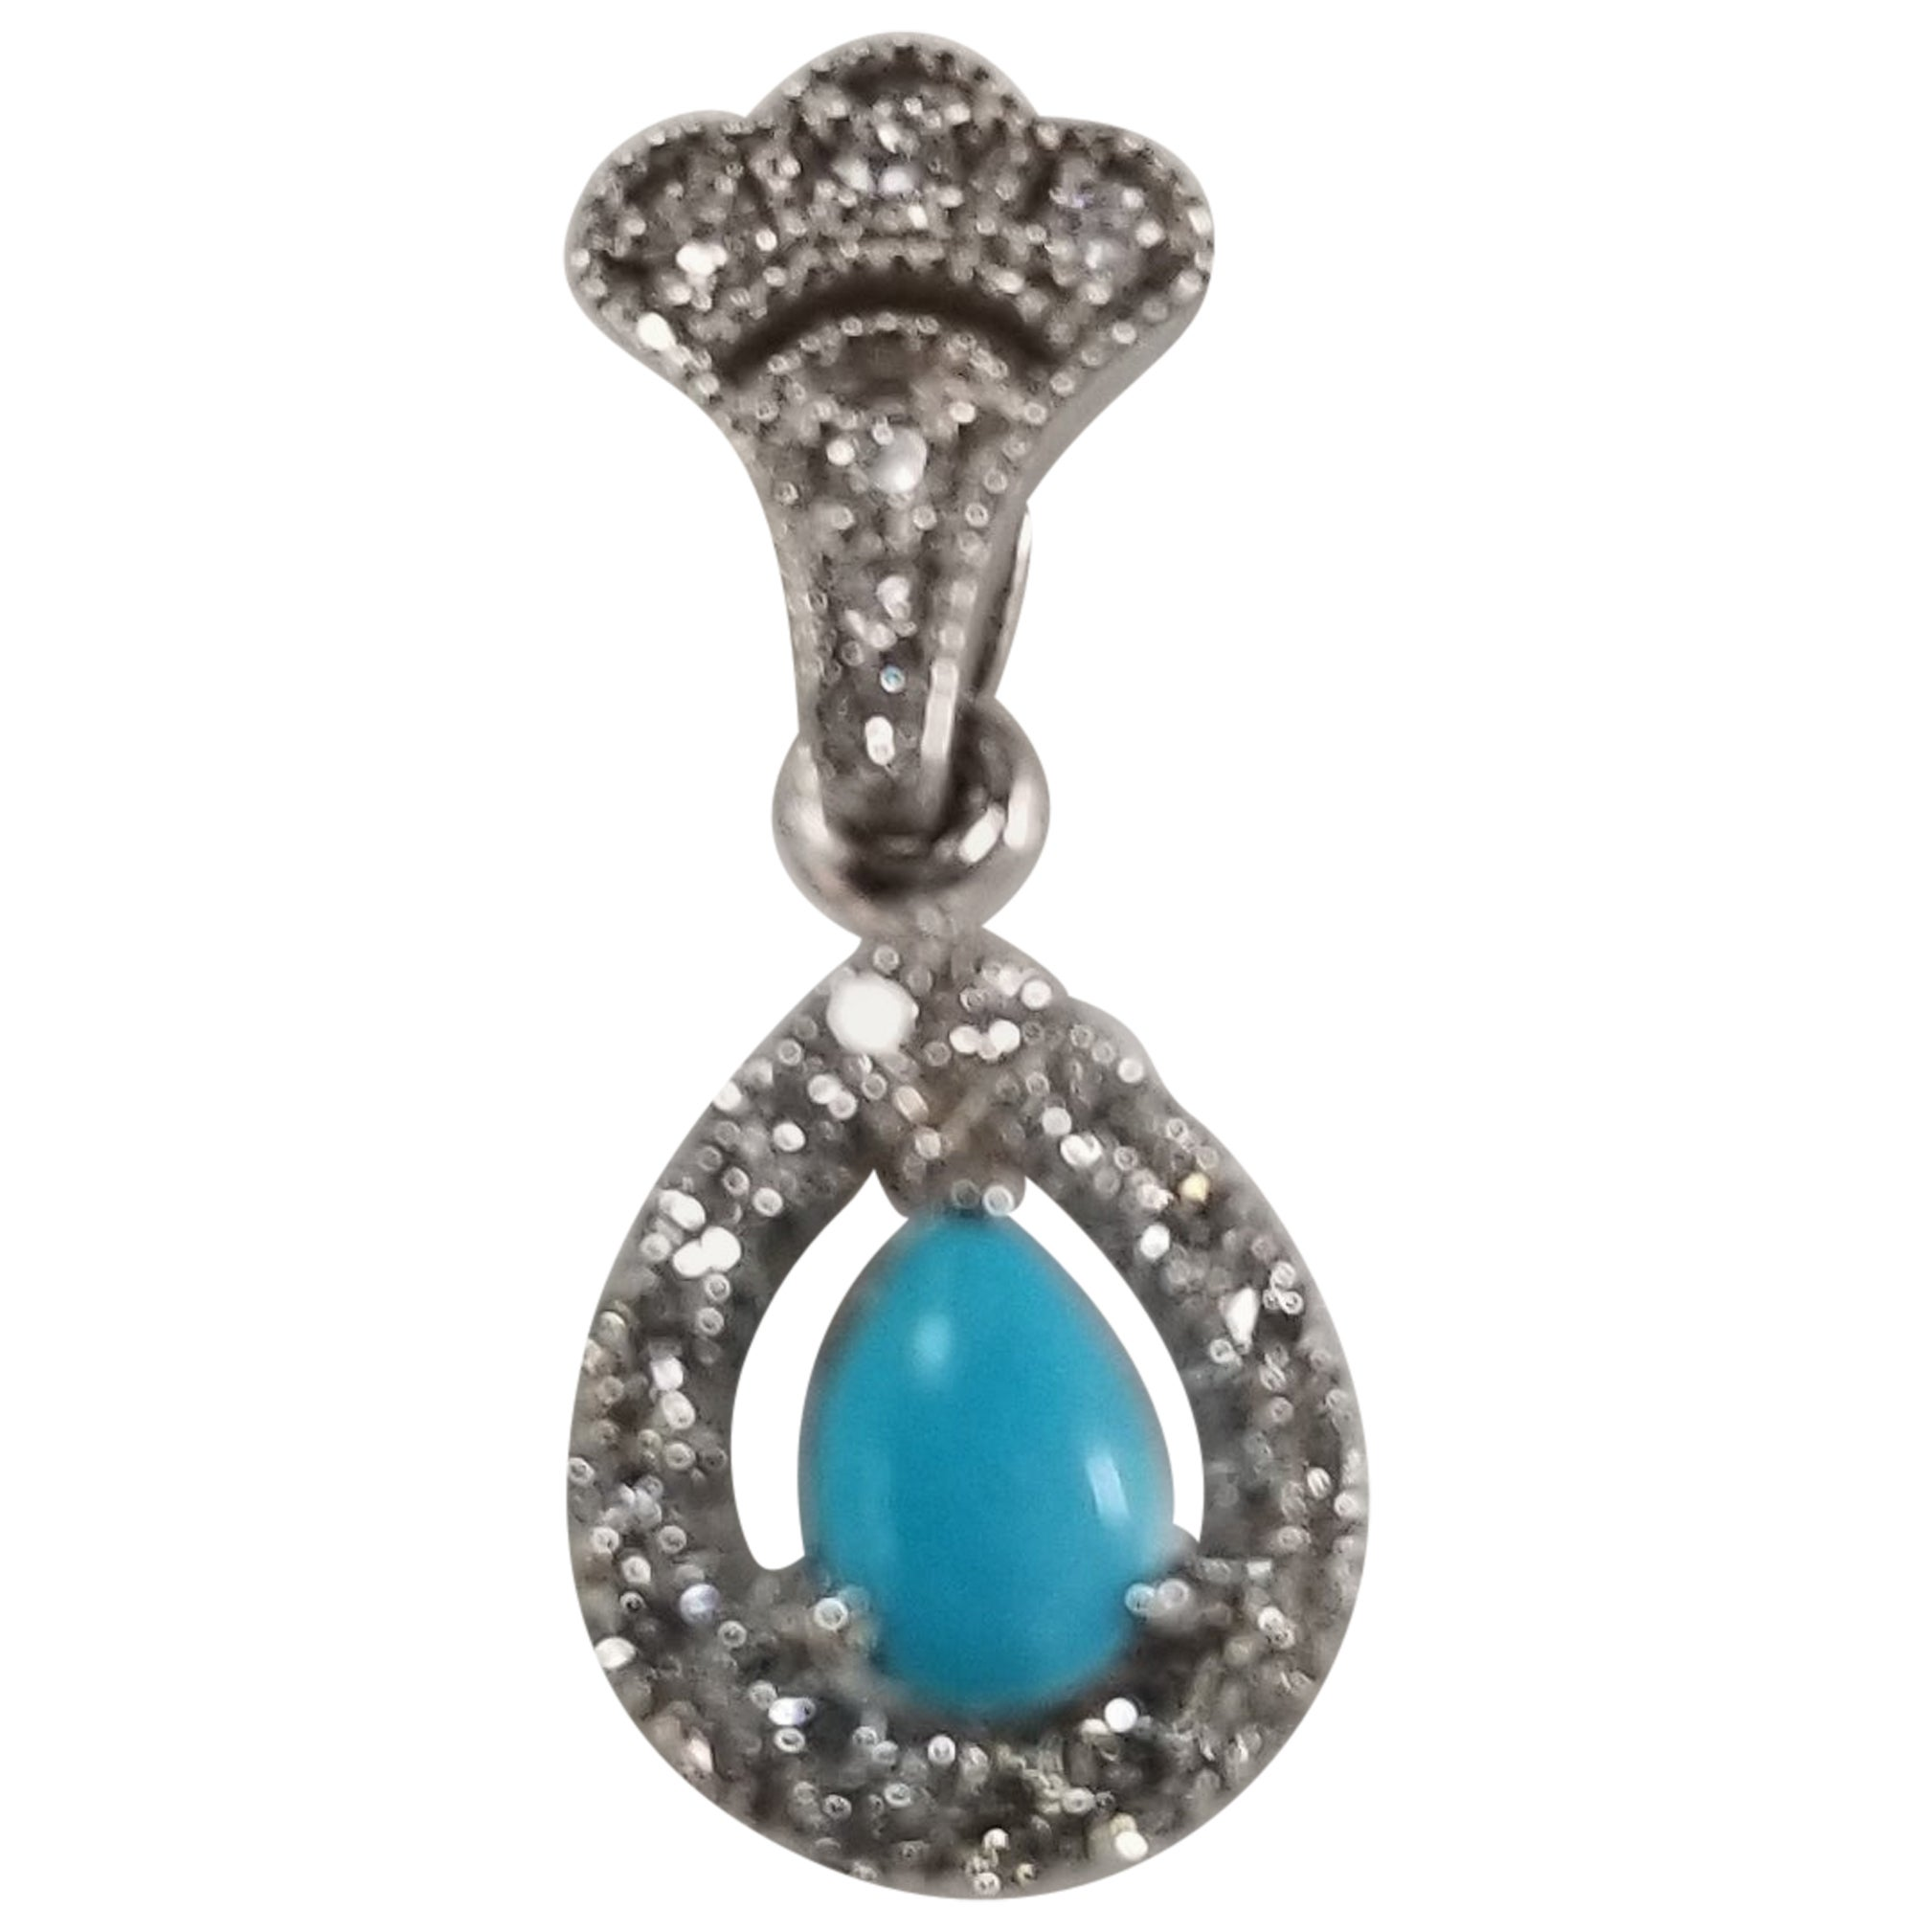 14 Karat White Gold Turquoise and Diamond Pendant